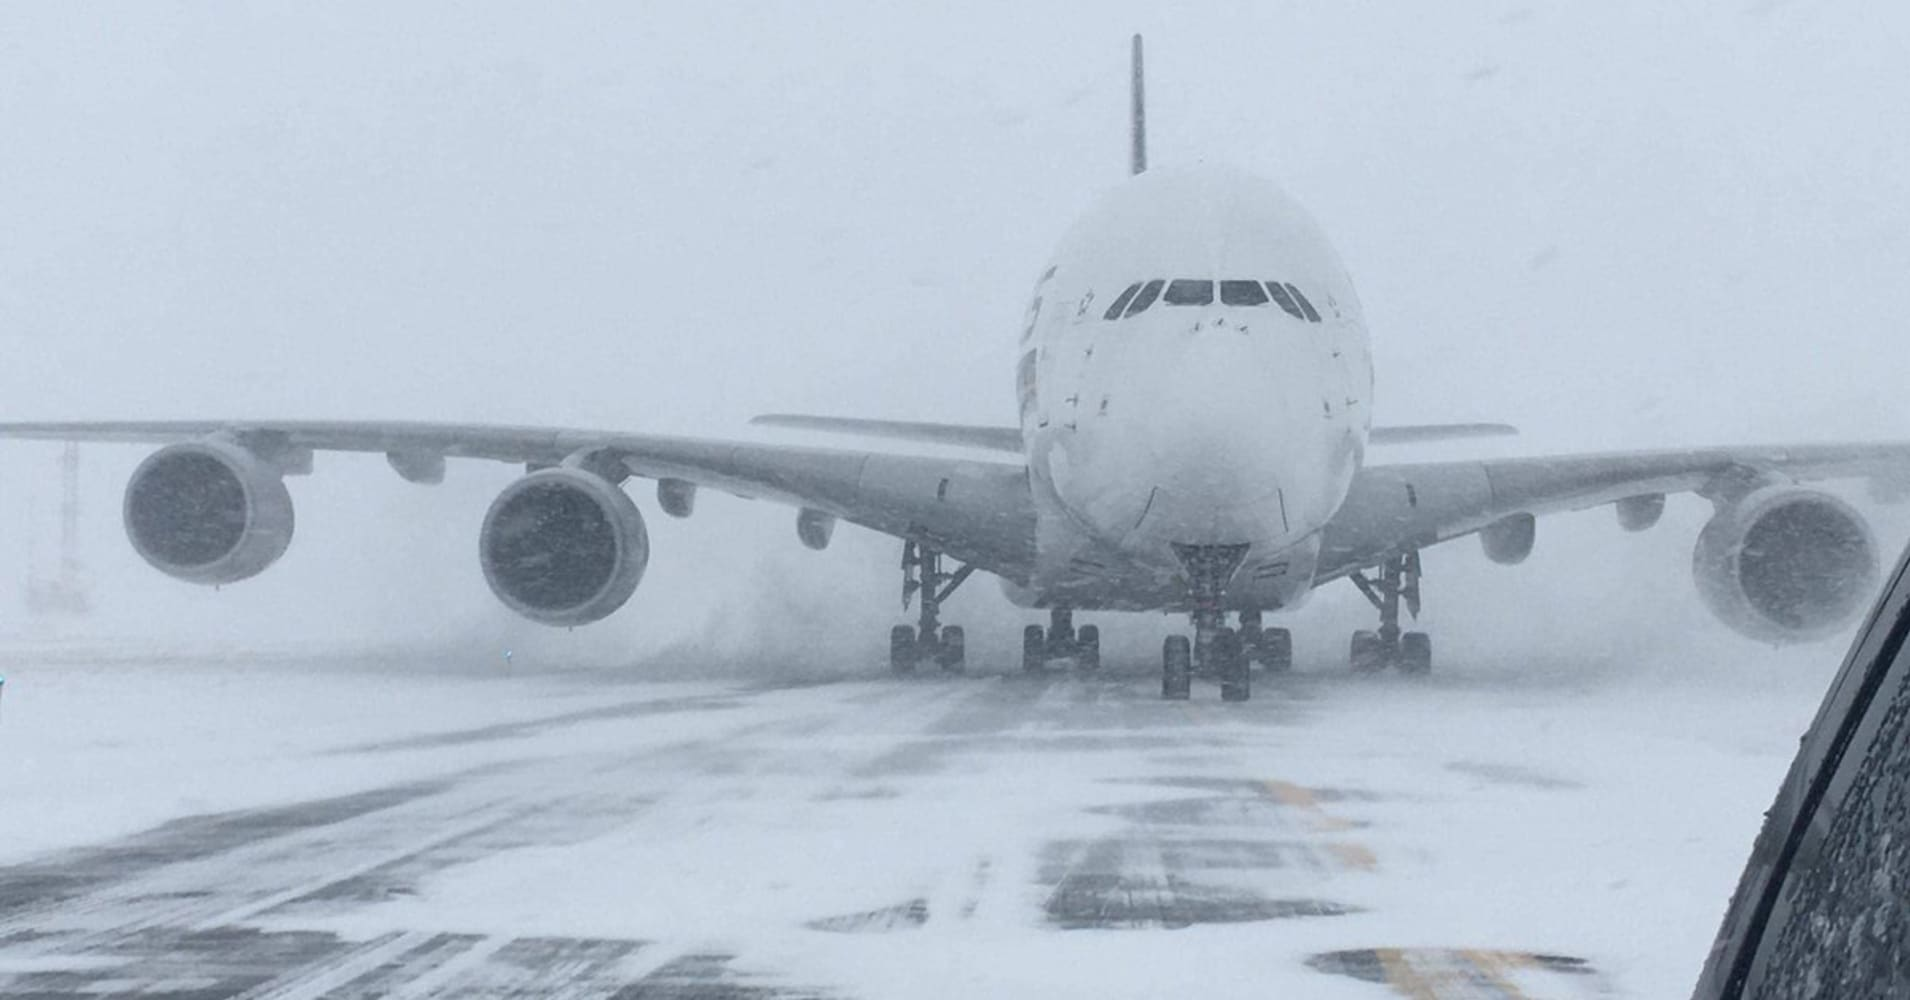 A Singapore Airlines A380 landed at Stewart Airport due to blizzard